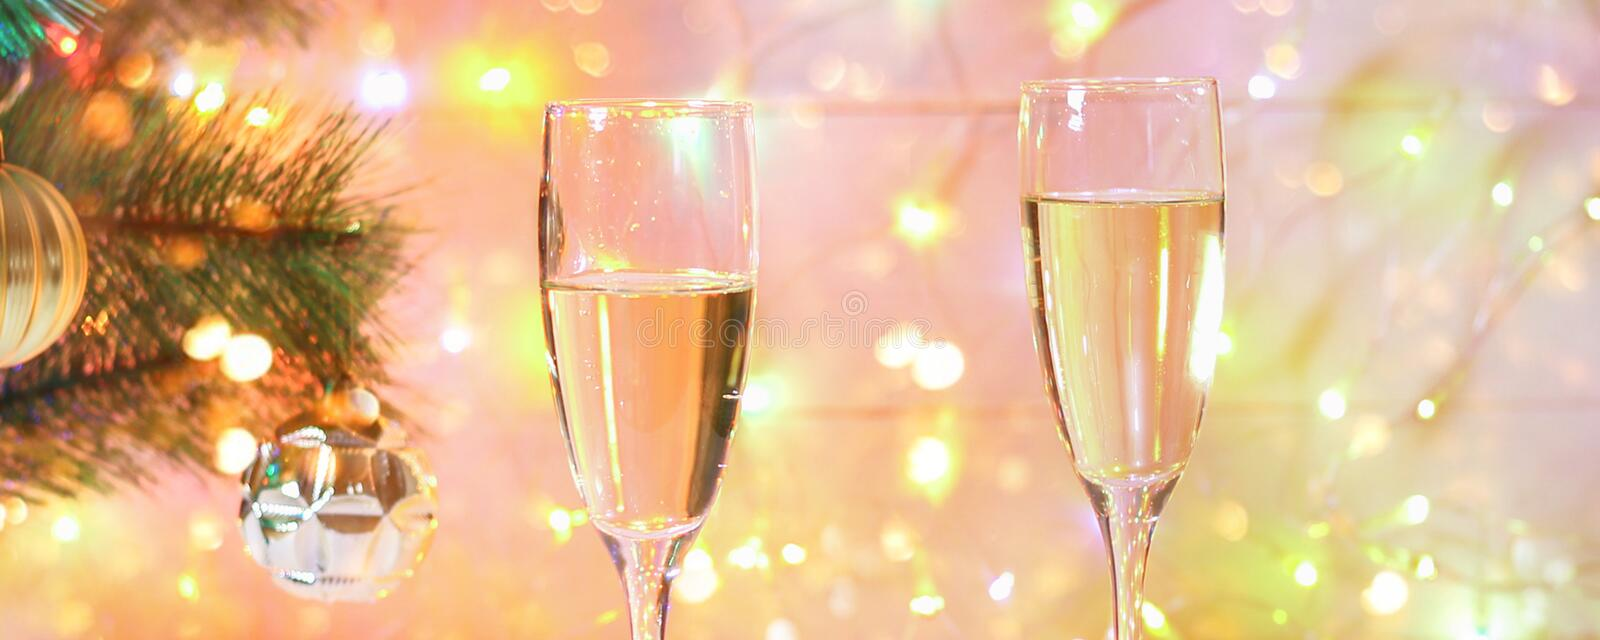 Two glasses of champagne stand on a white wooden table on the background of a New Year tree and garlands. Christmas bokeh. royalty free stock photography